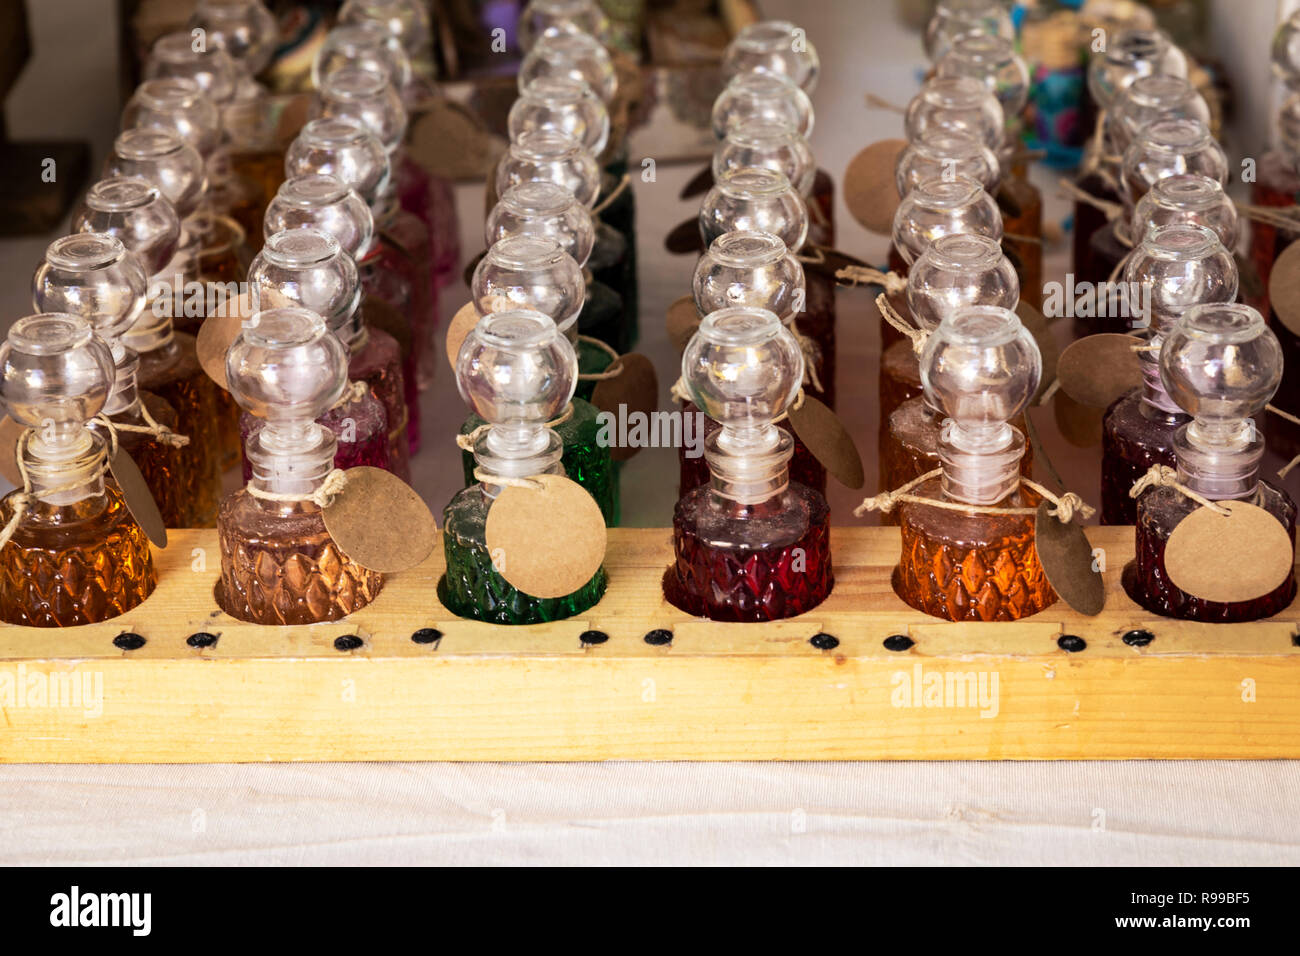 several glass jars perfume colors on a stand in a store - Stock Image